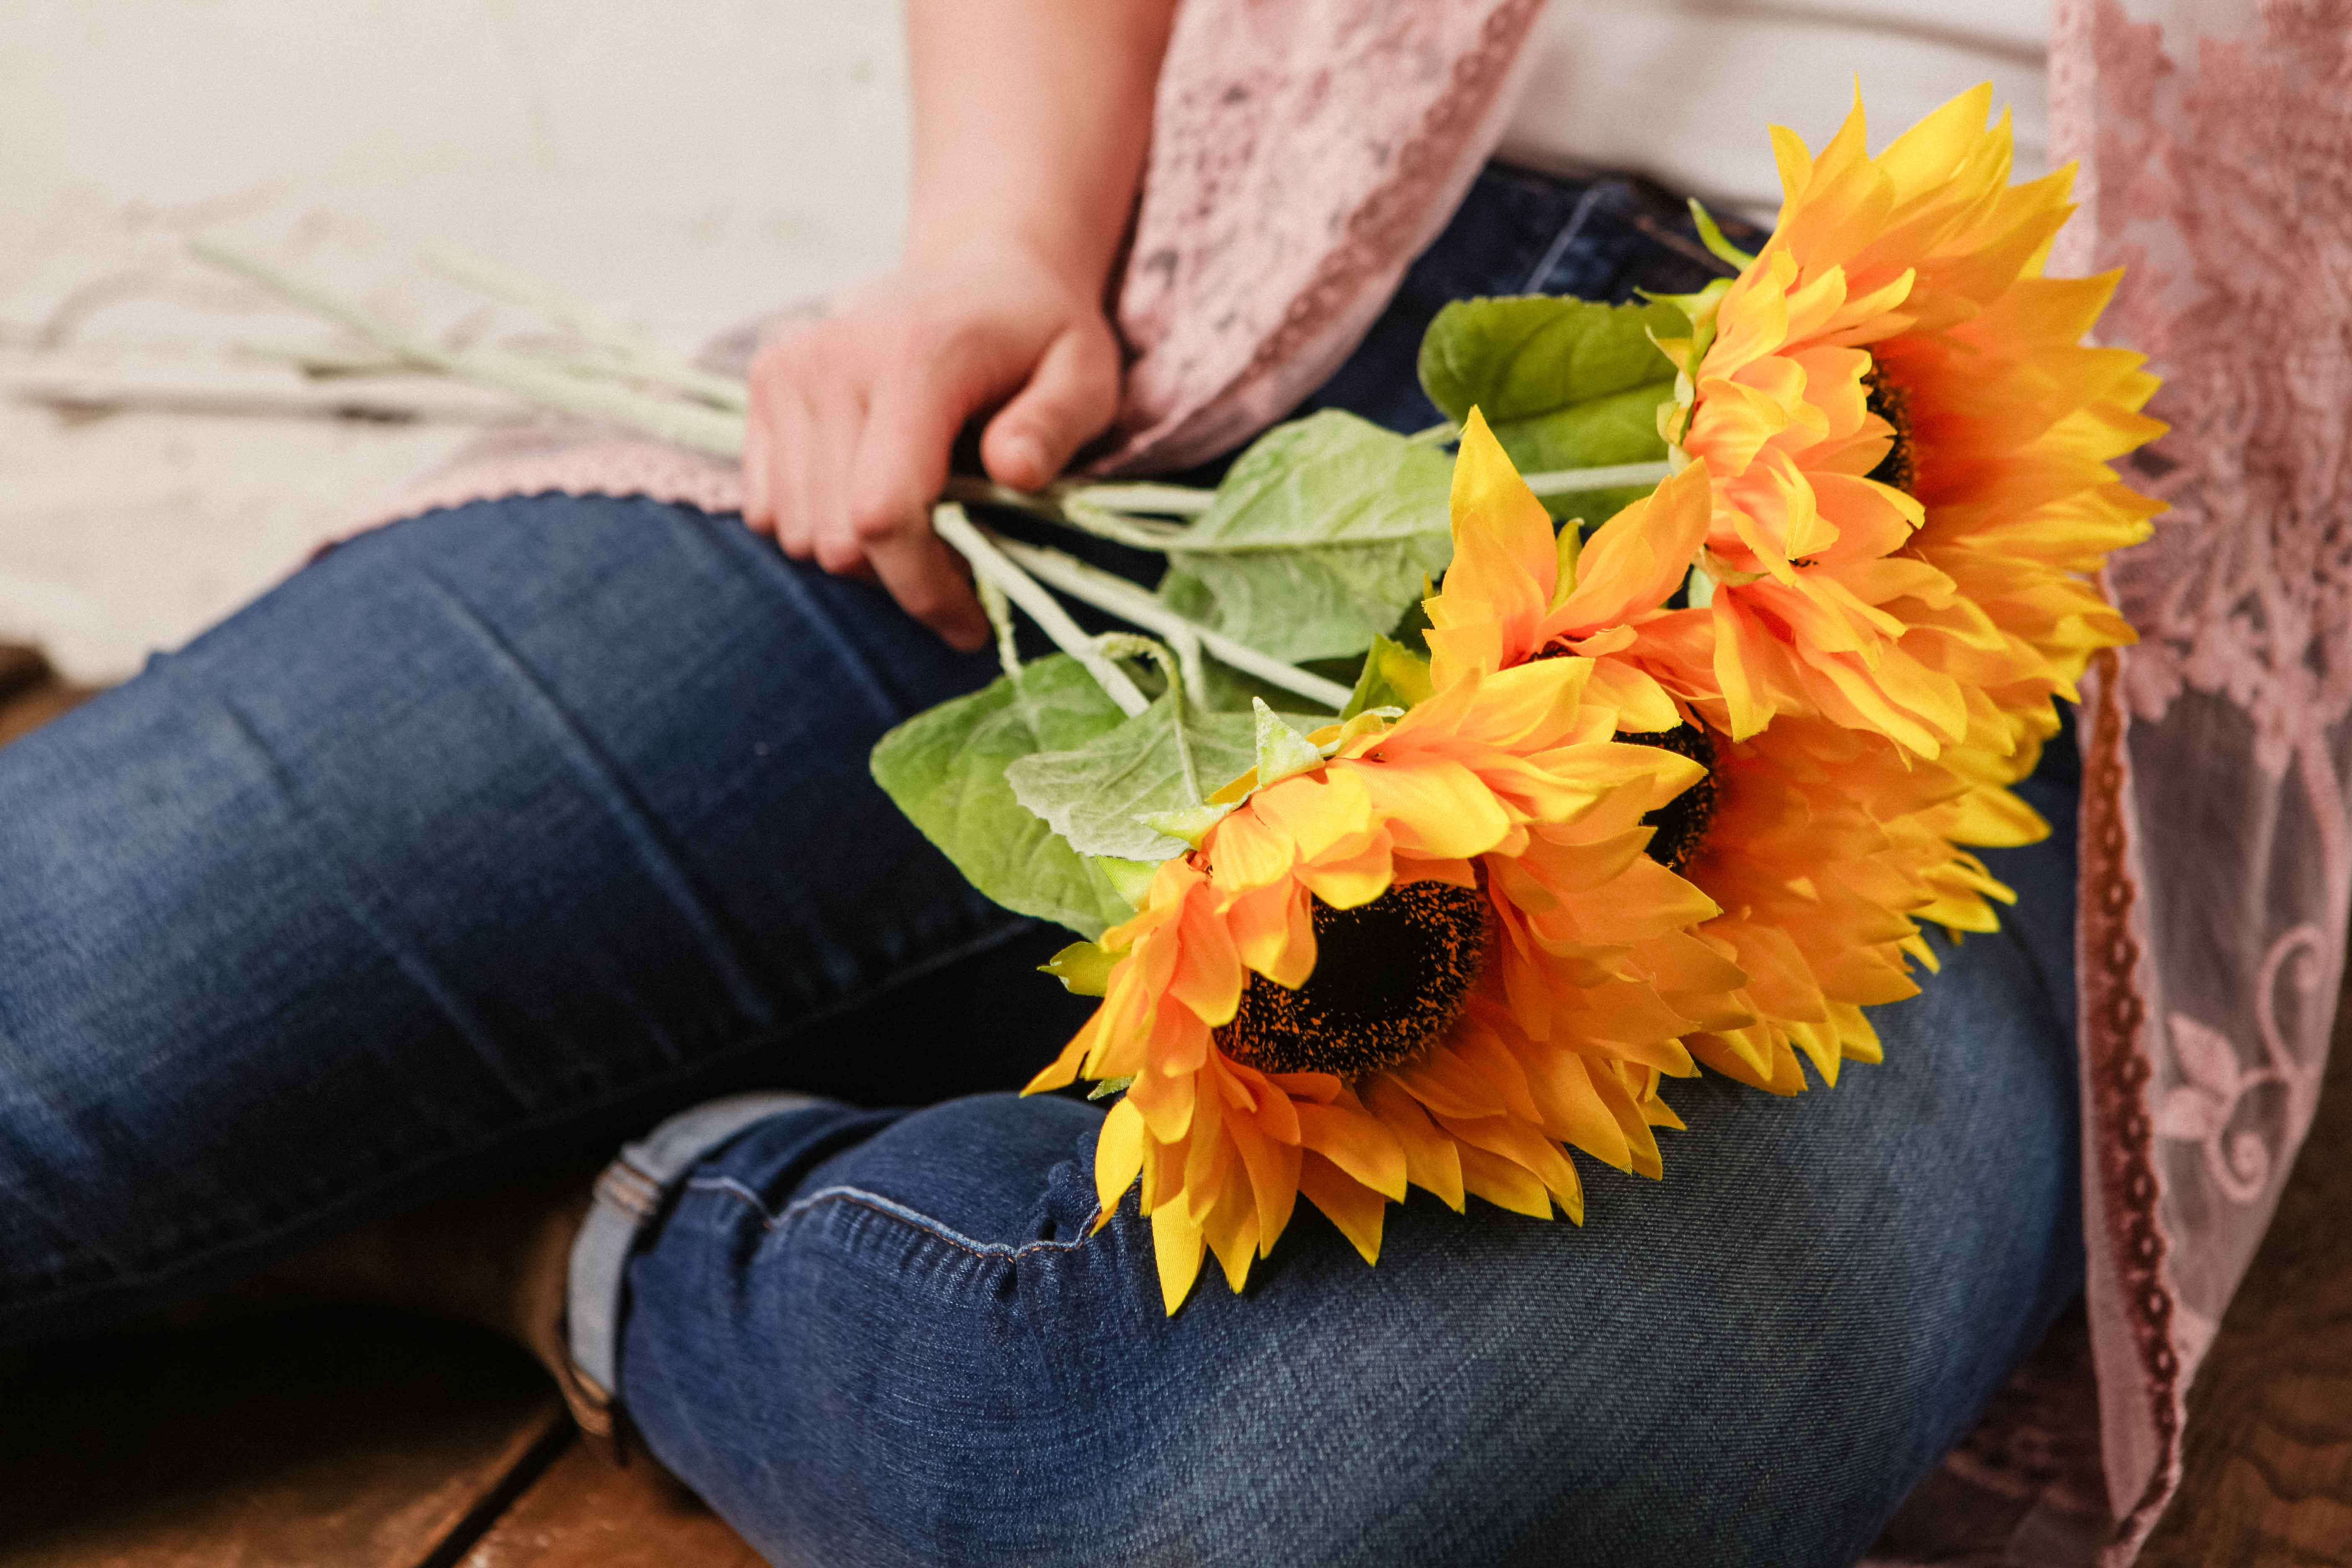 Bundle of flowers laying on the lap of a person